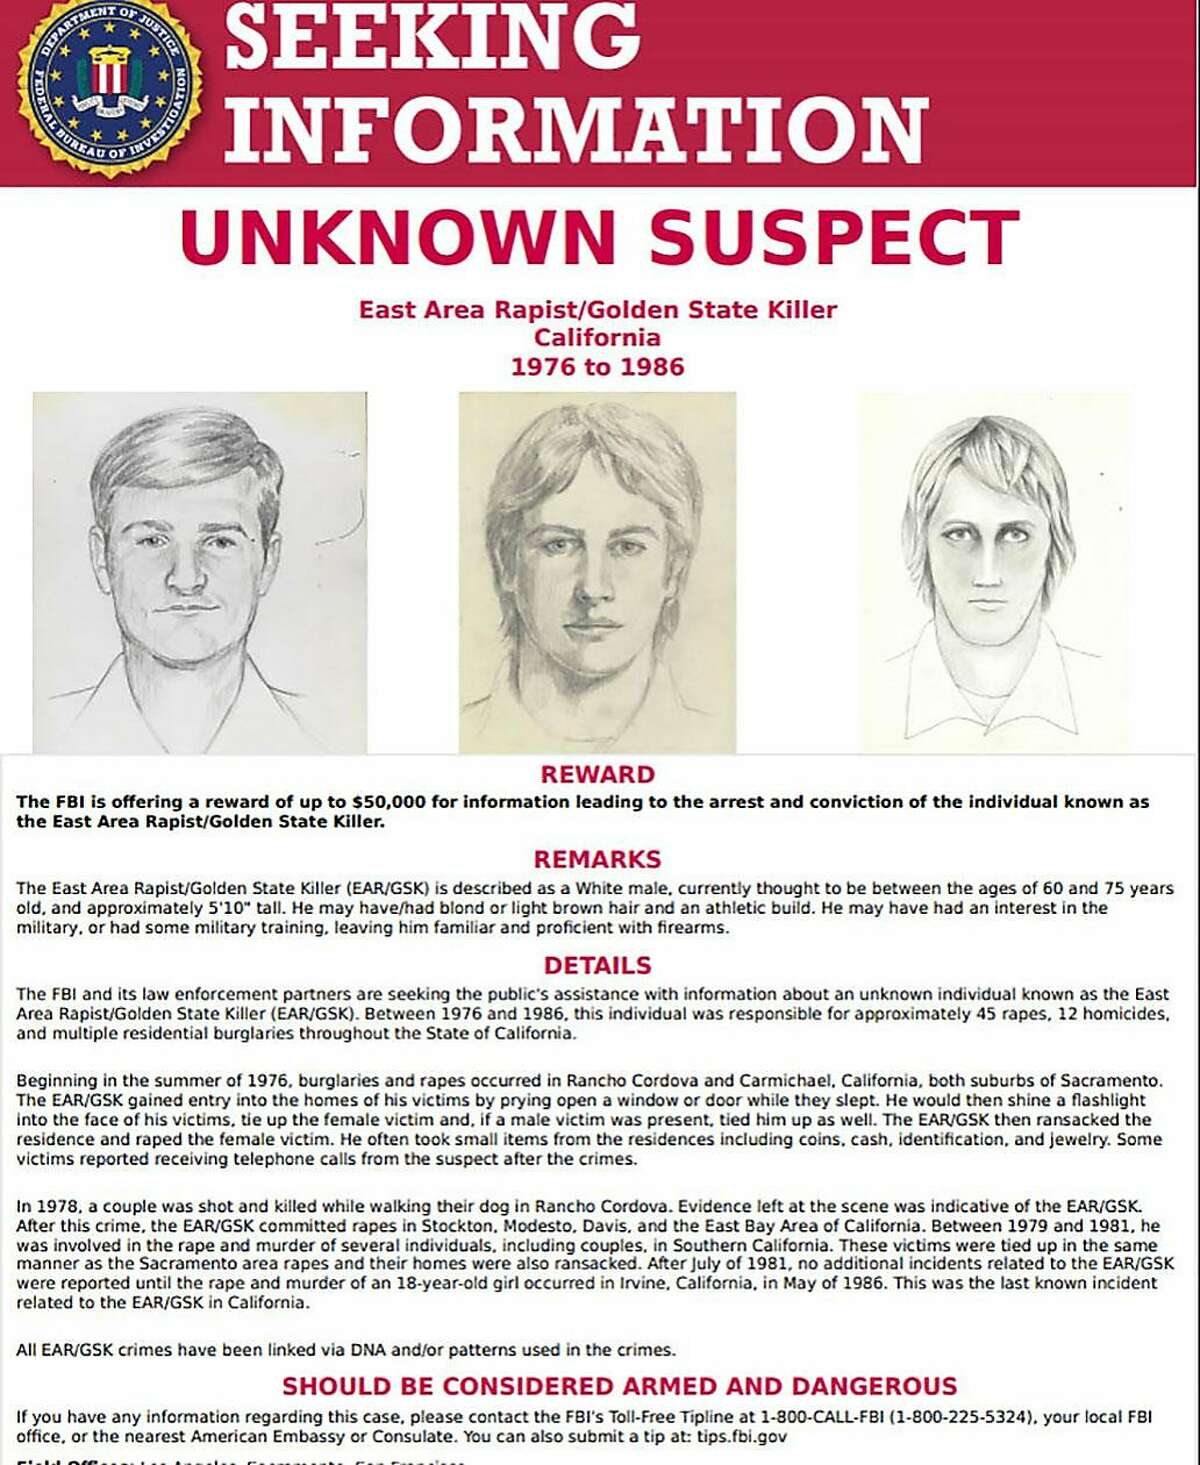 This FBI wanted poster obtained April 25, 2018 shows drawings of a suspect known as the